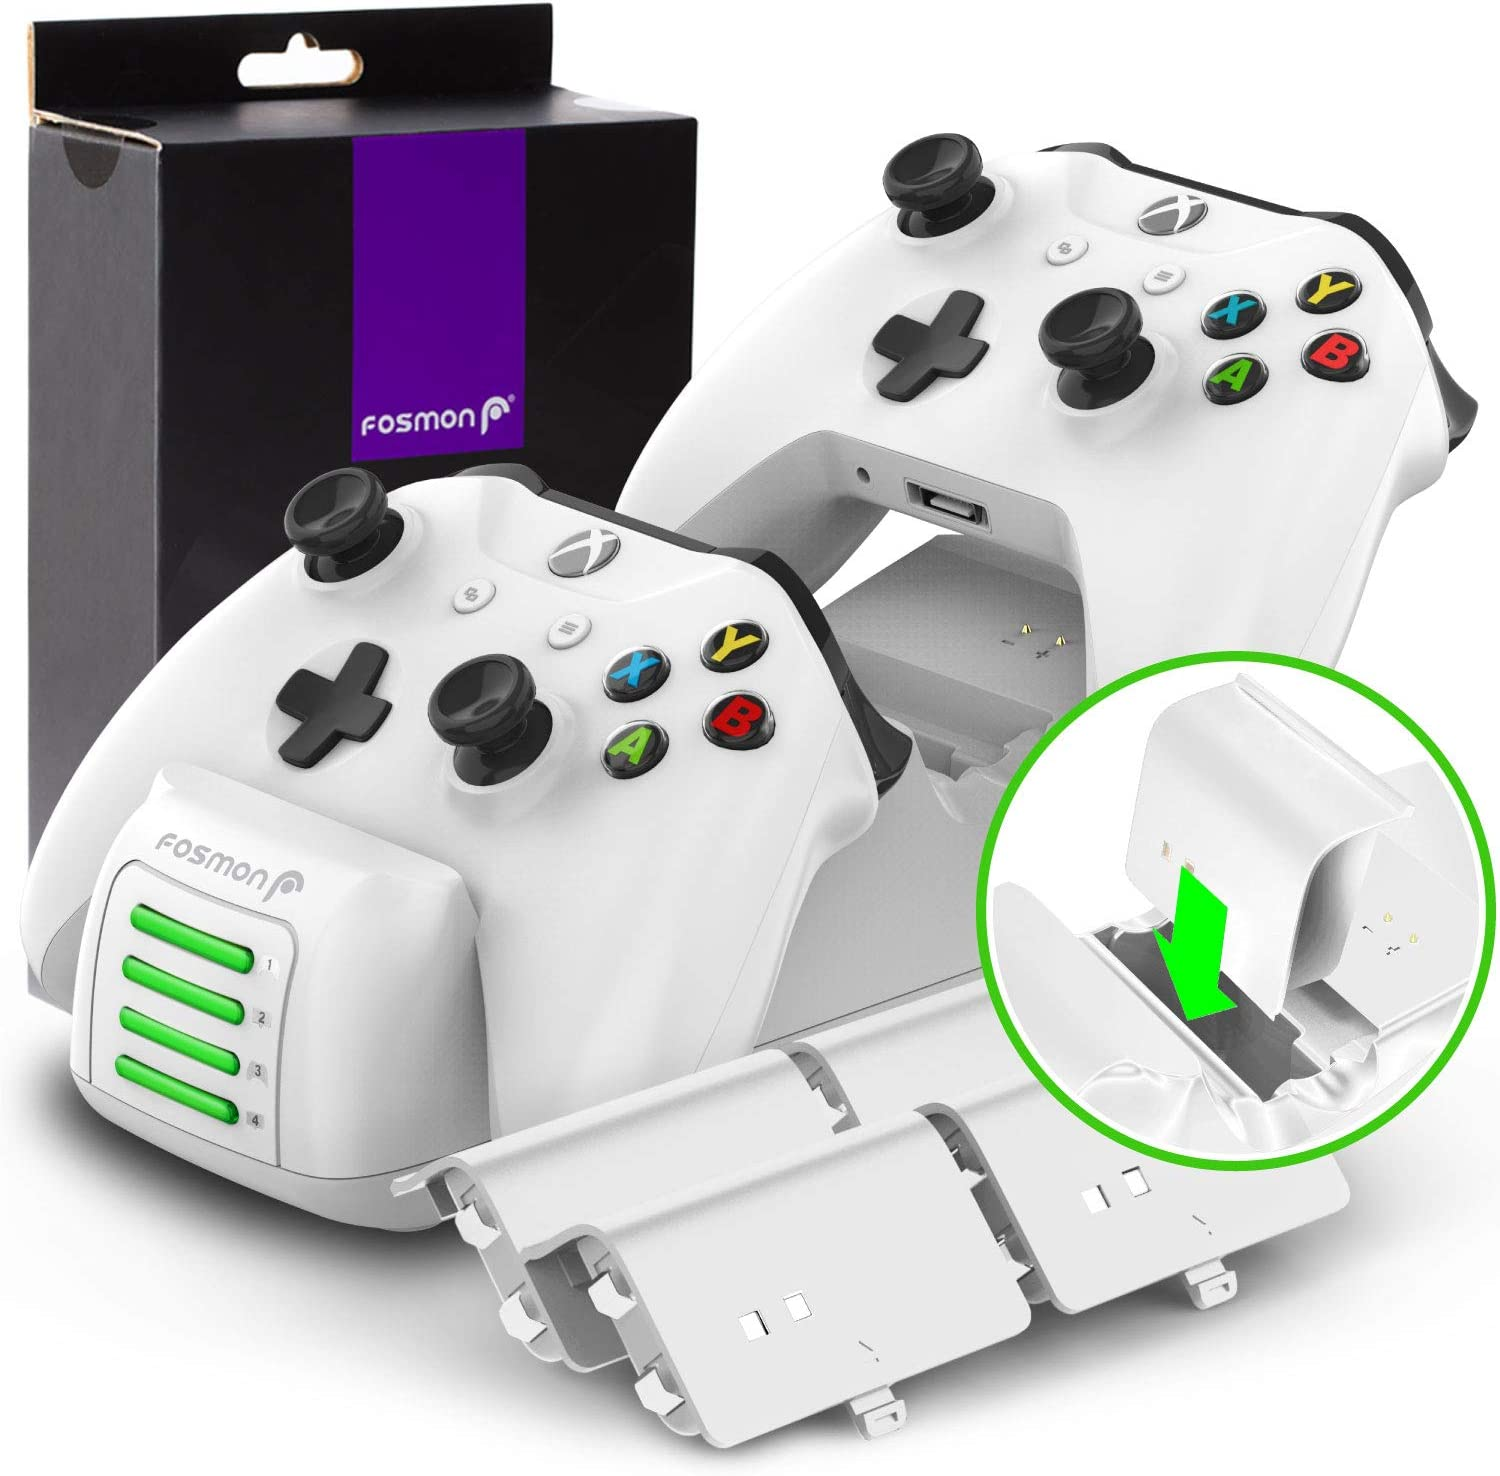 2 Batteries Slots Docking Charging Station with 4 Rechargeable Battery Packs Dual Dock Fosmon Quad PRO Controller Charger Compatible with Xbox One//One X//One S Elite Controllers Upgraded White